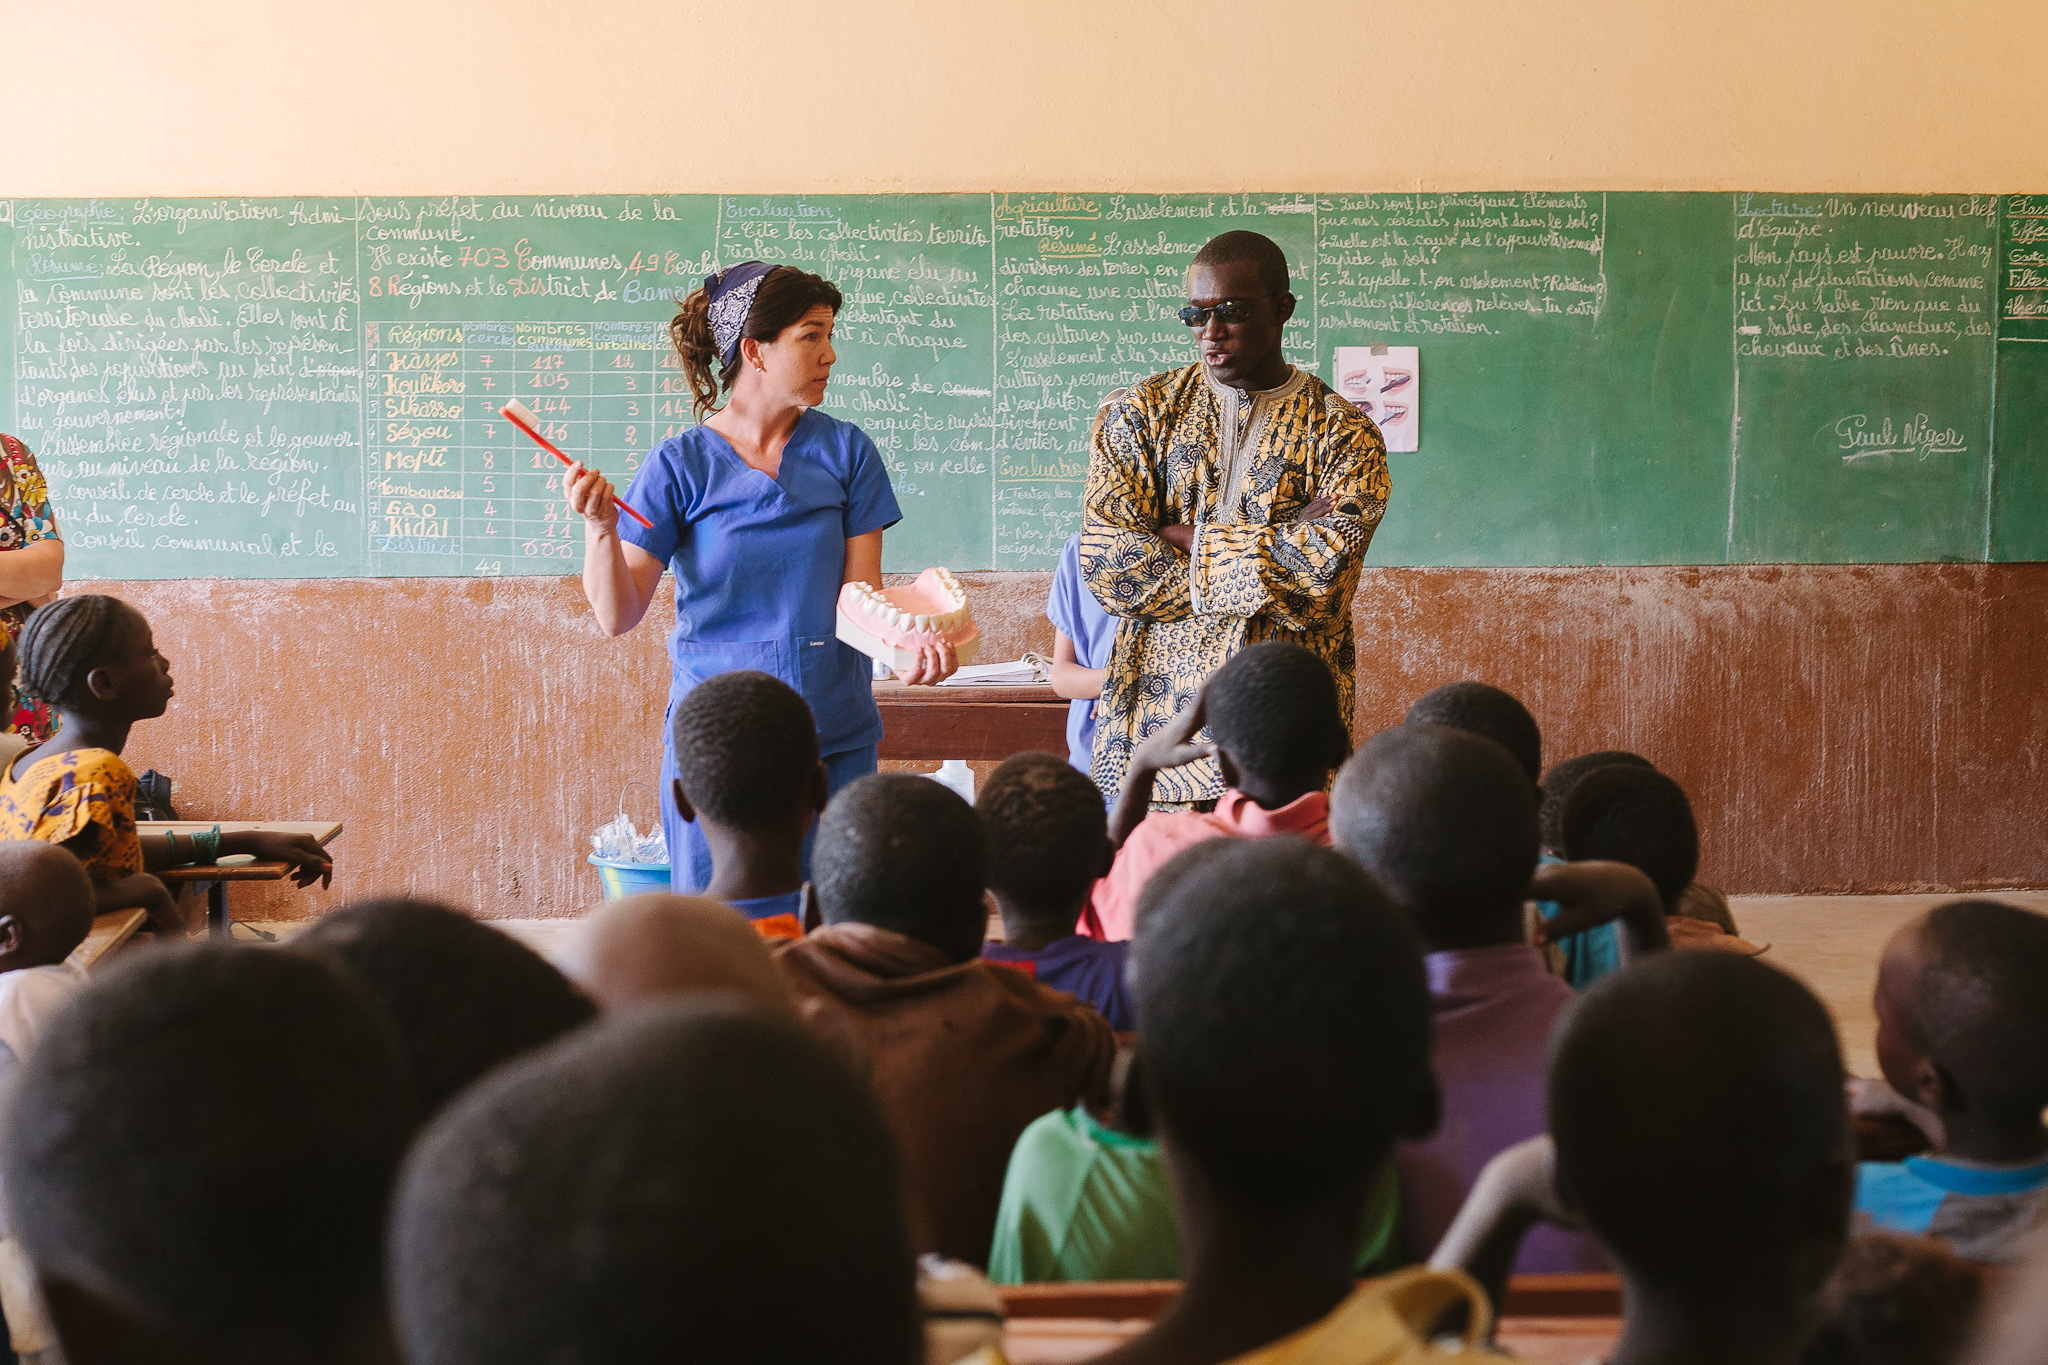 Inside a schoolroom in Gnekekoro, a volunteer health educator teams up with a translator to host a brief session on dental health and hygiene. Gnekekoro worked with Mali Rising in 2009 to construct a middle school, which now enrolls 90 students.